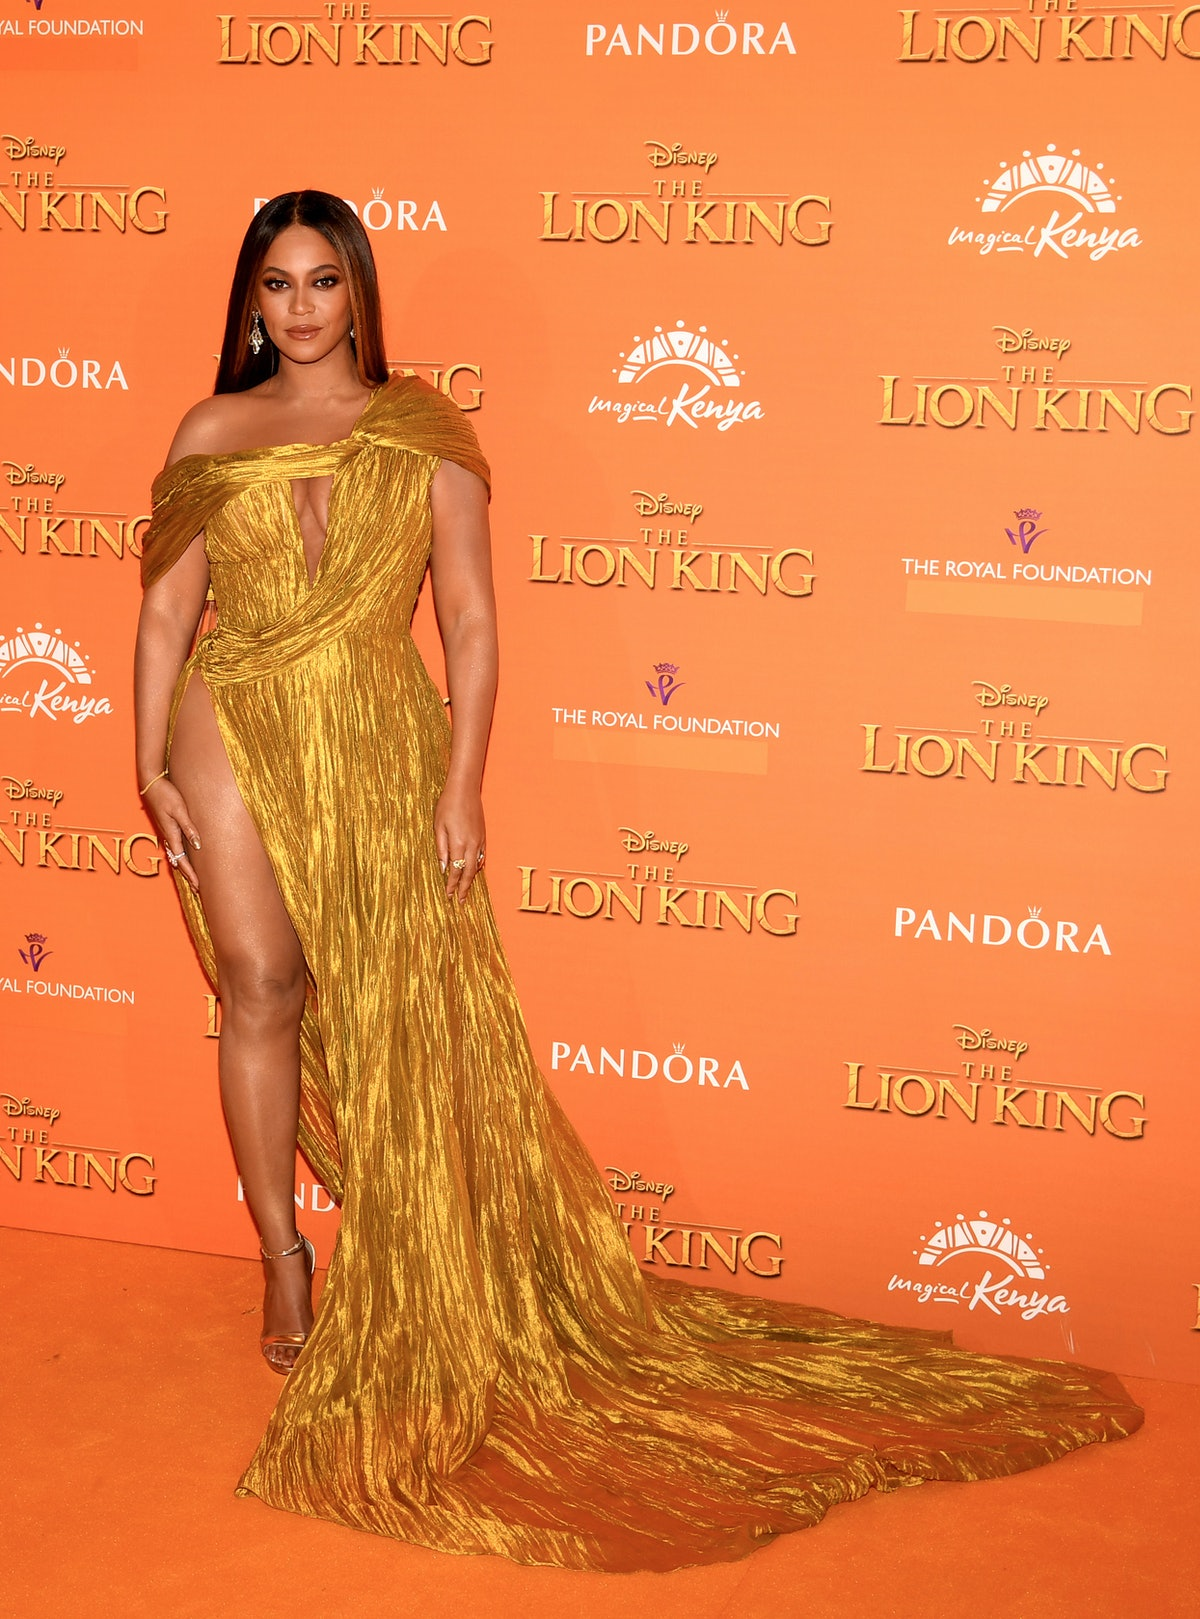 Beyonce wearing yellow gown